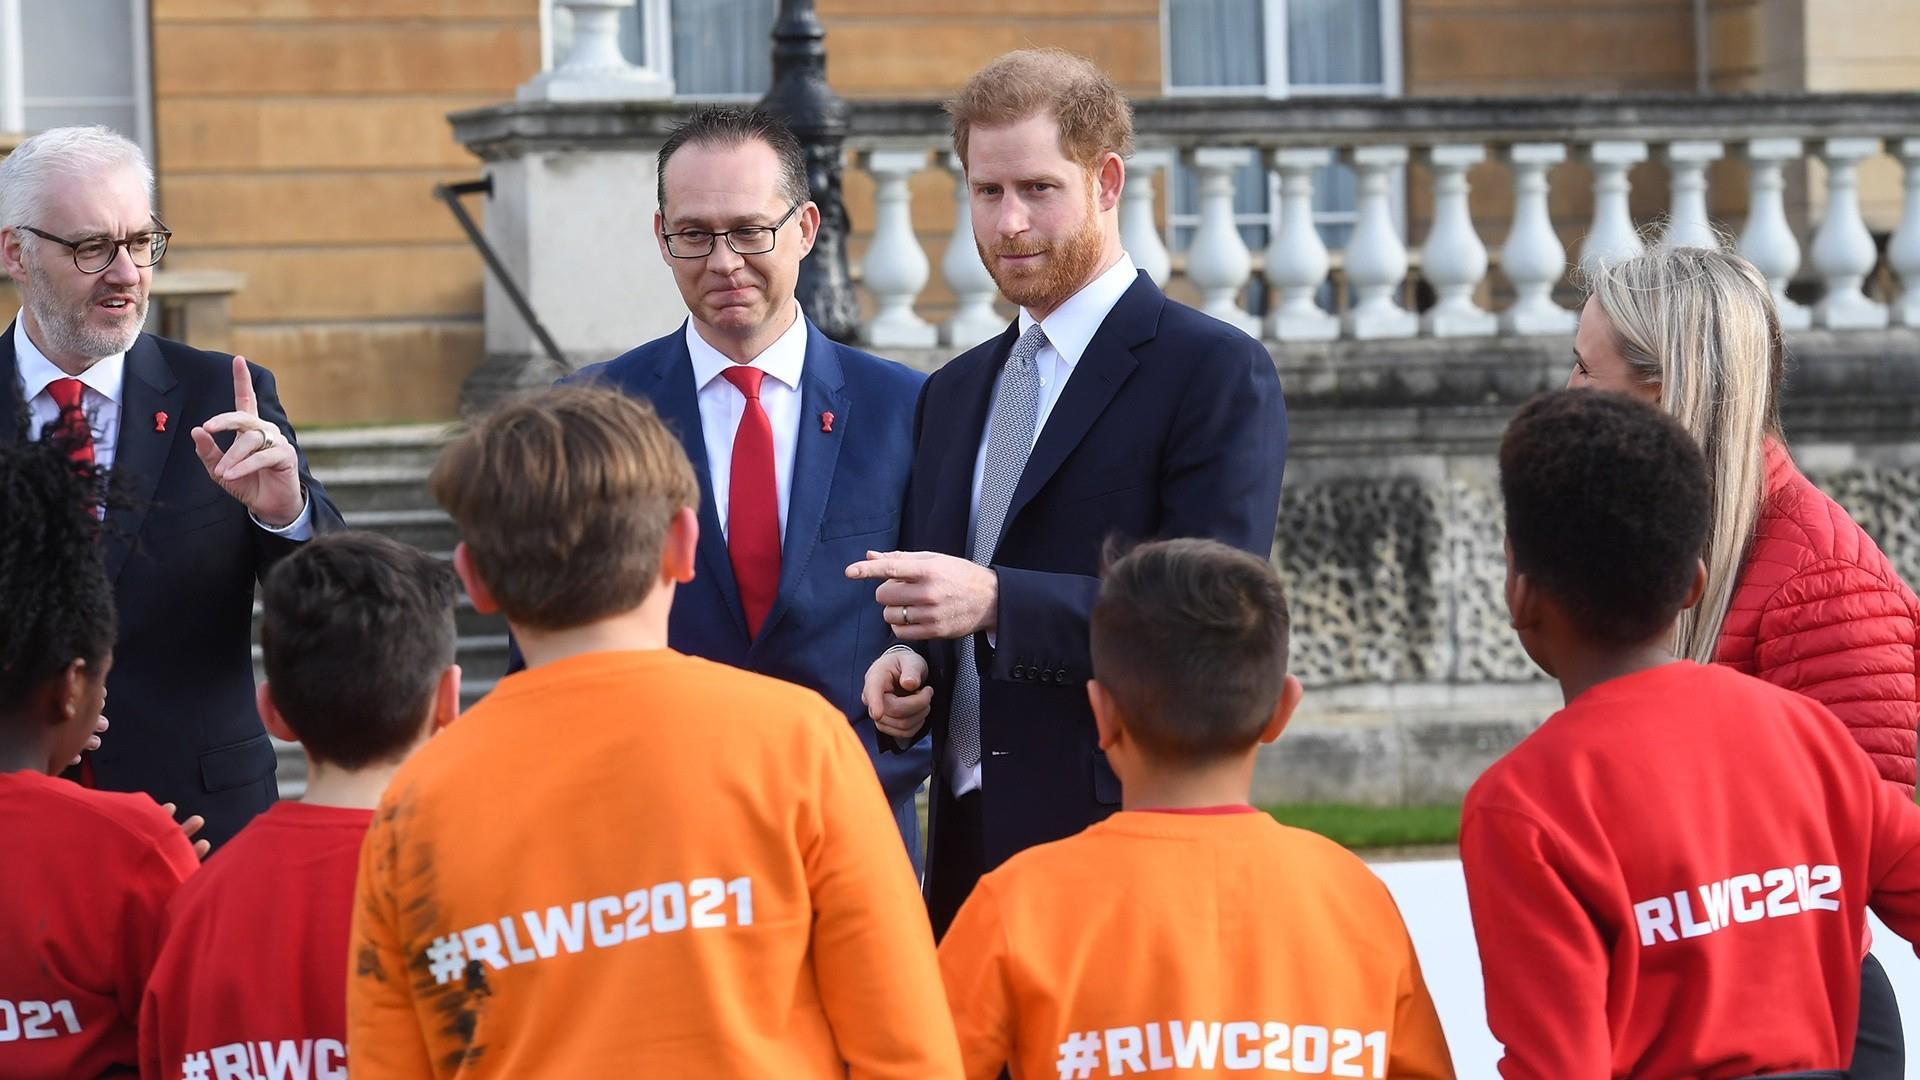 Prince Harry makes first official appearance since royal crisis talks